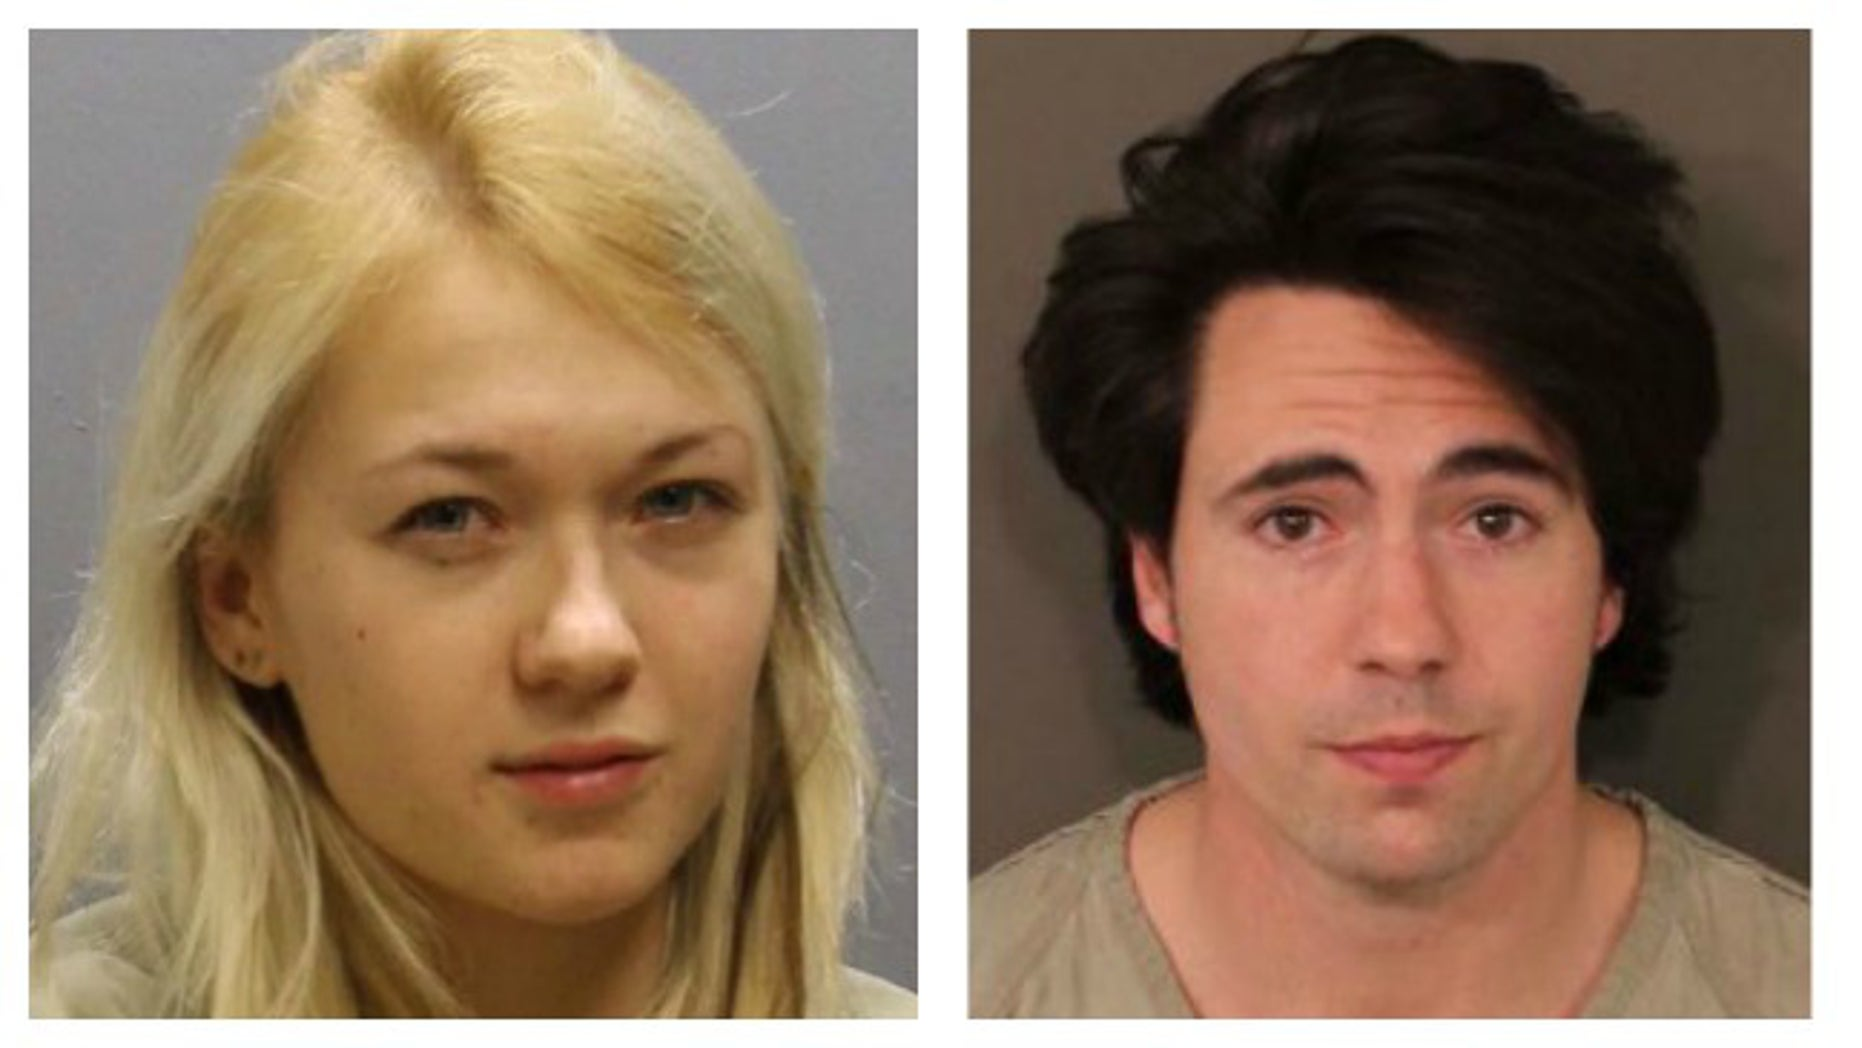 Marina Lonina, left, and Raymond Gates were charged in the alleged rape of a 17-year-old girl.